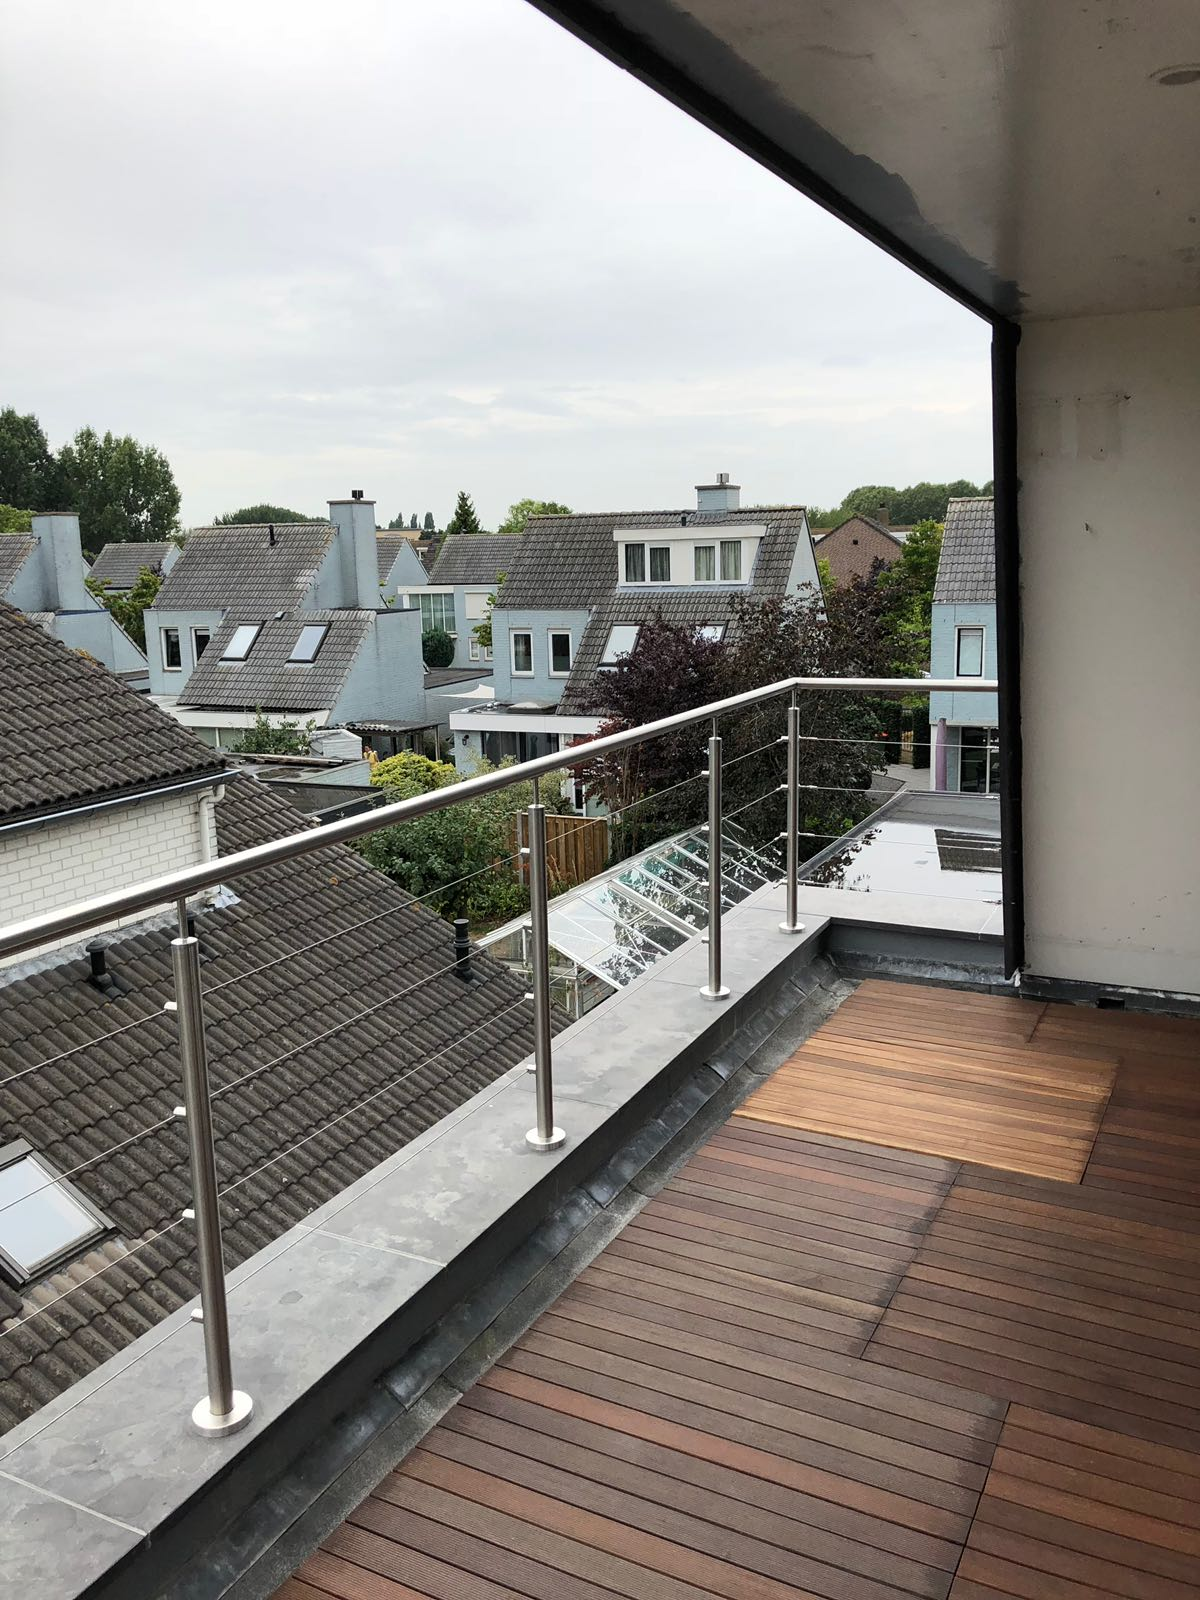 rvs balustrade kabel